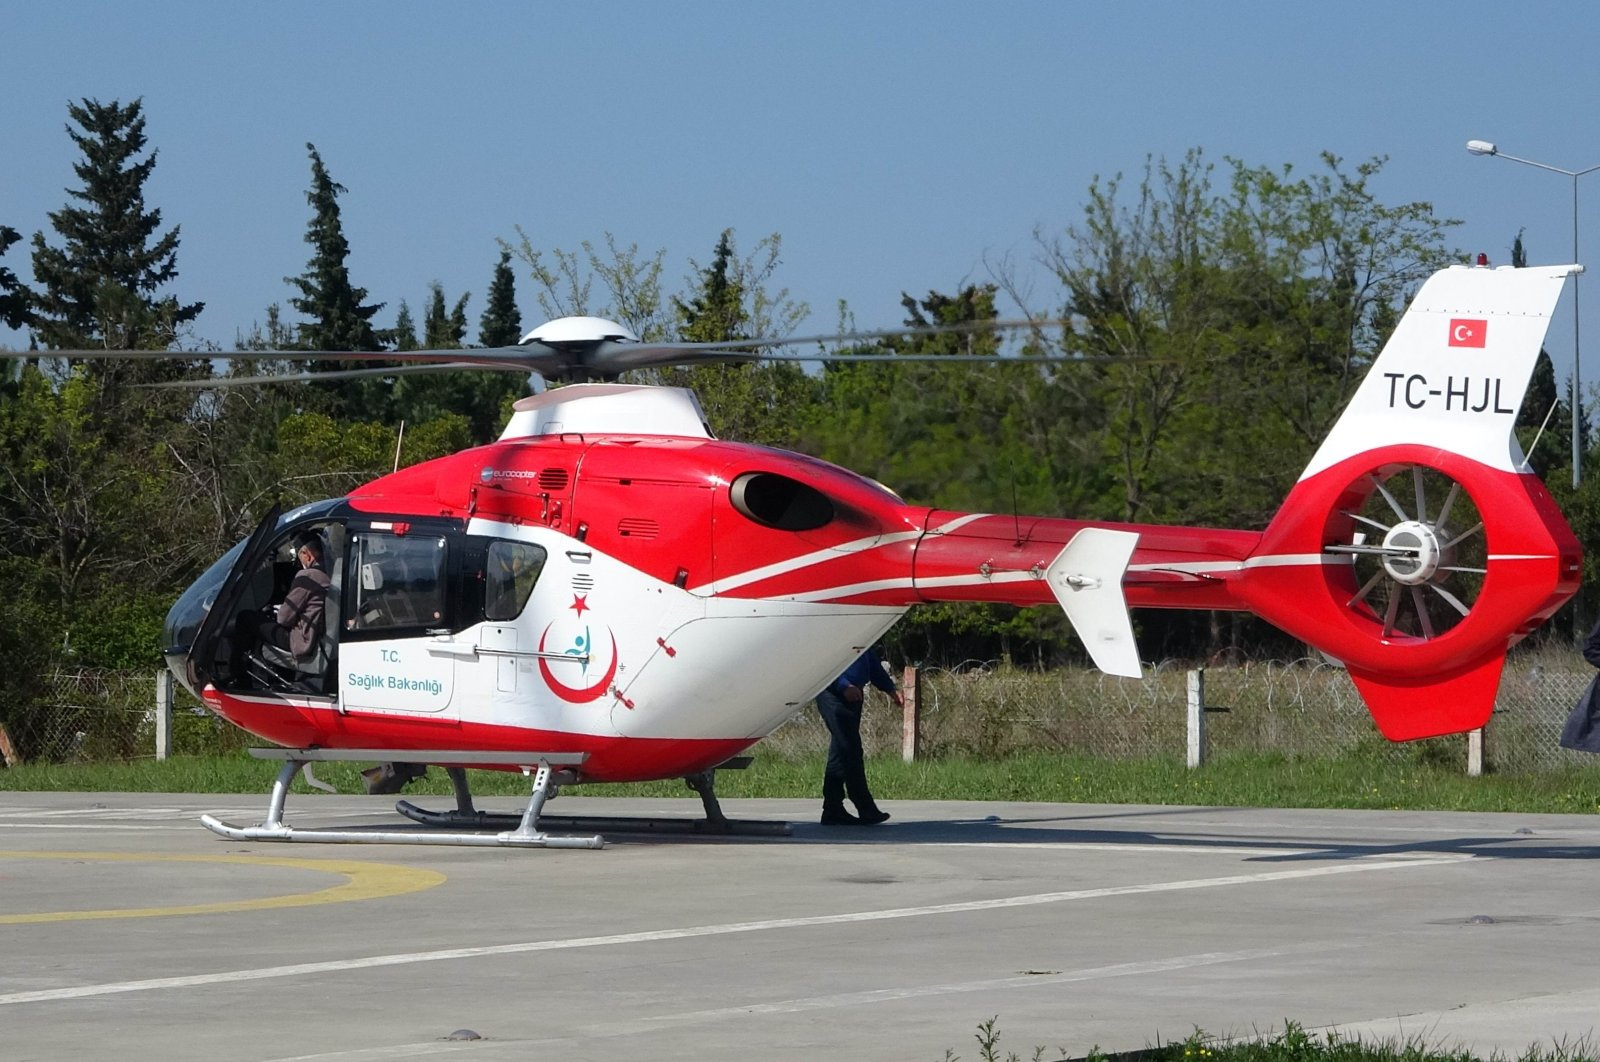 The helicopter had to turn back after the farmer refused to let it land, Samsun, Turkey, May 2, 2020. (İHA Photo)